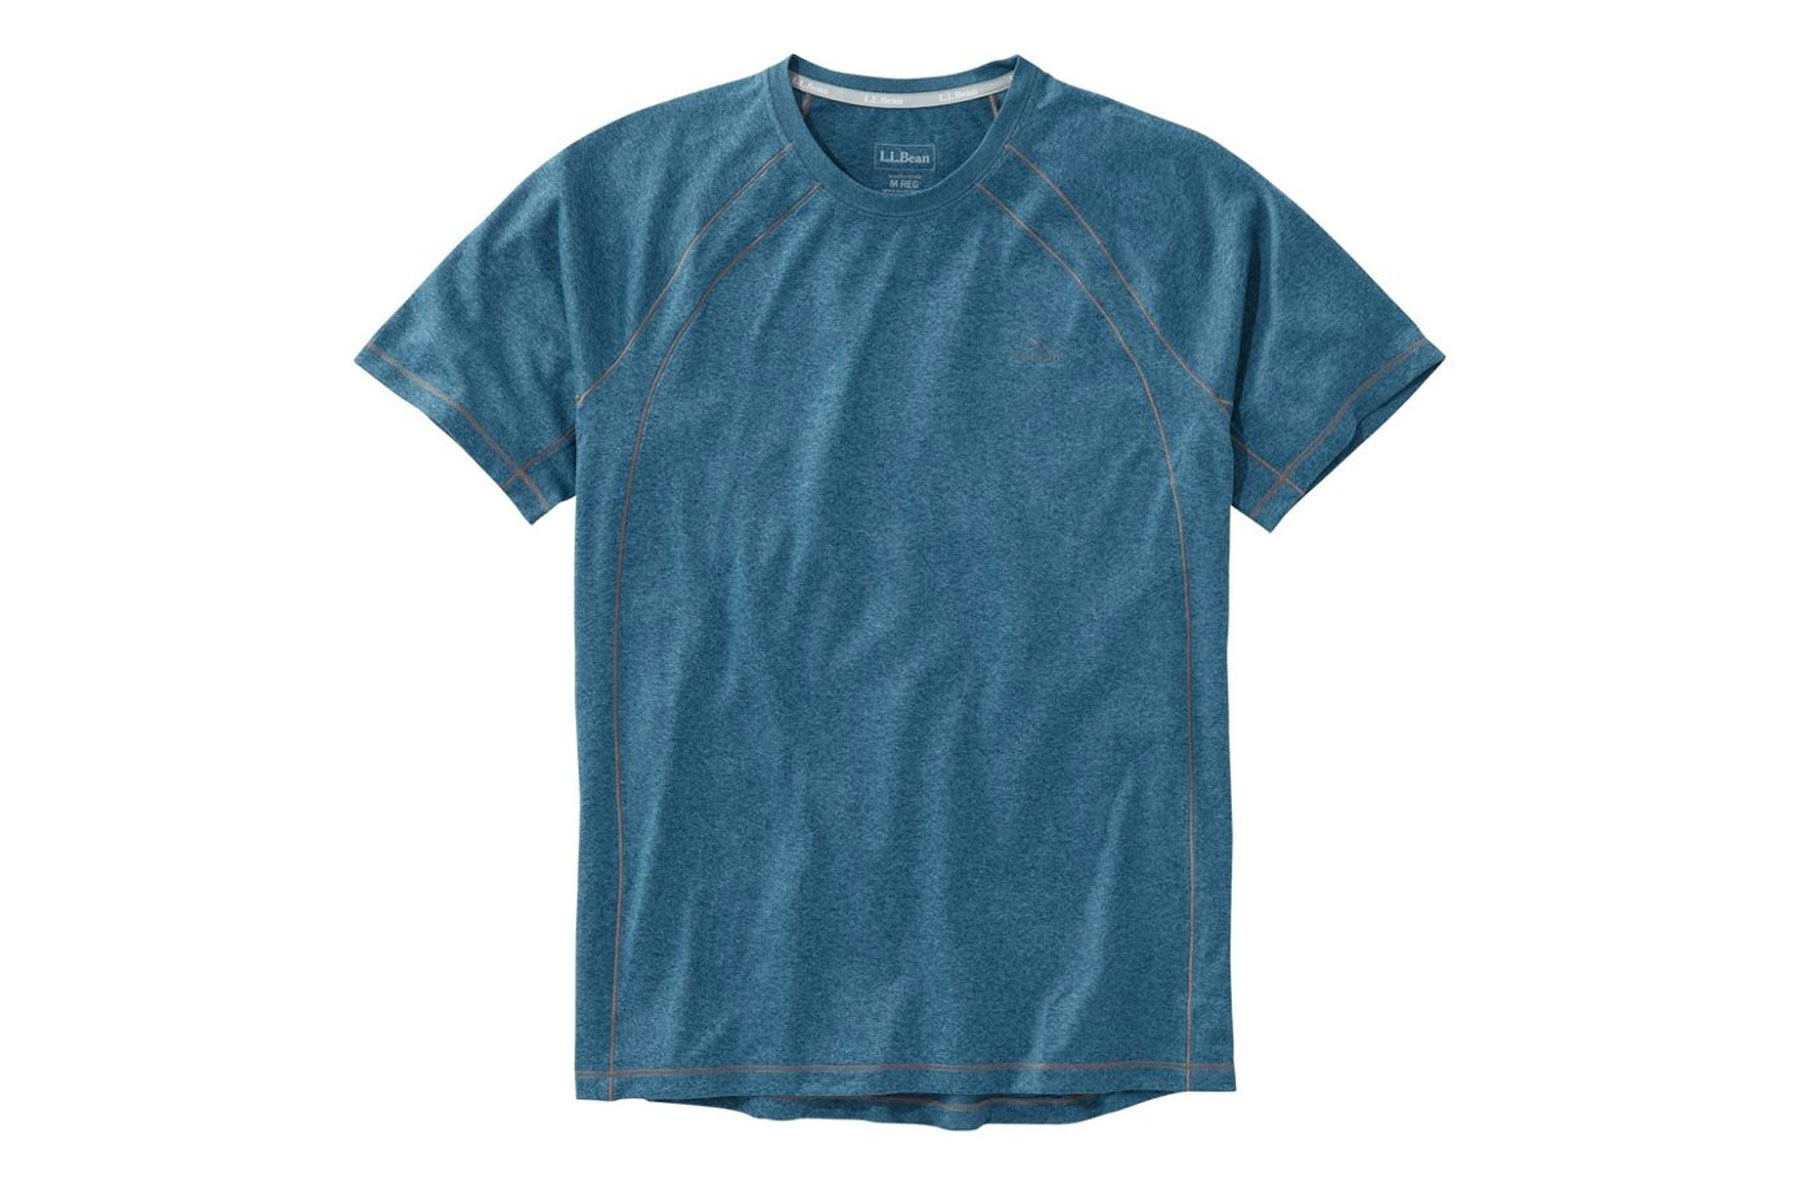 Teal/dark blue men's tshirt